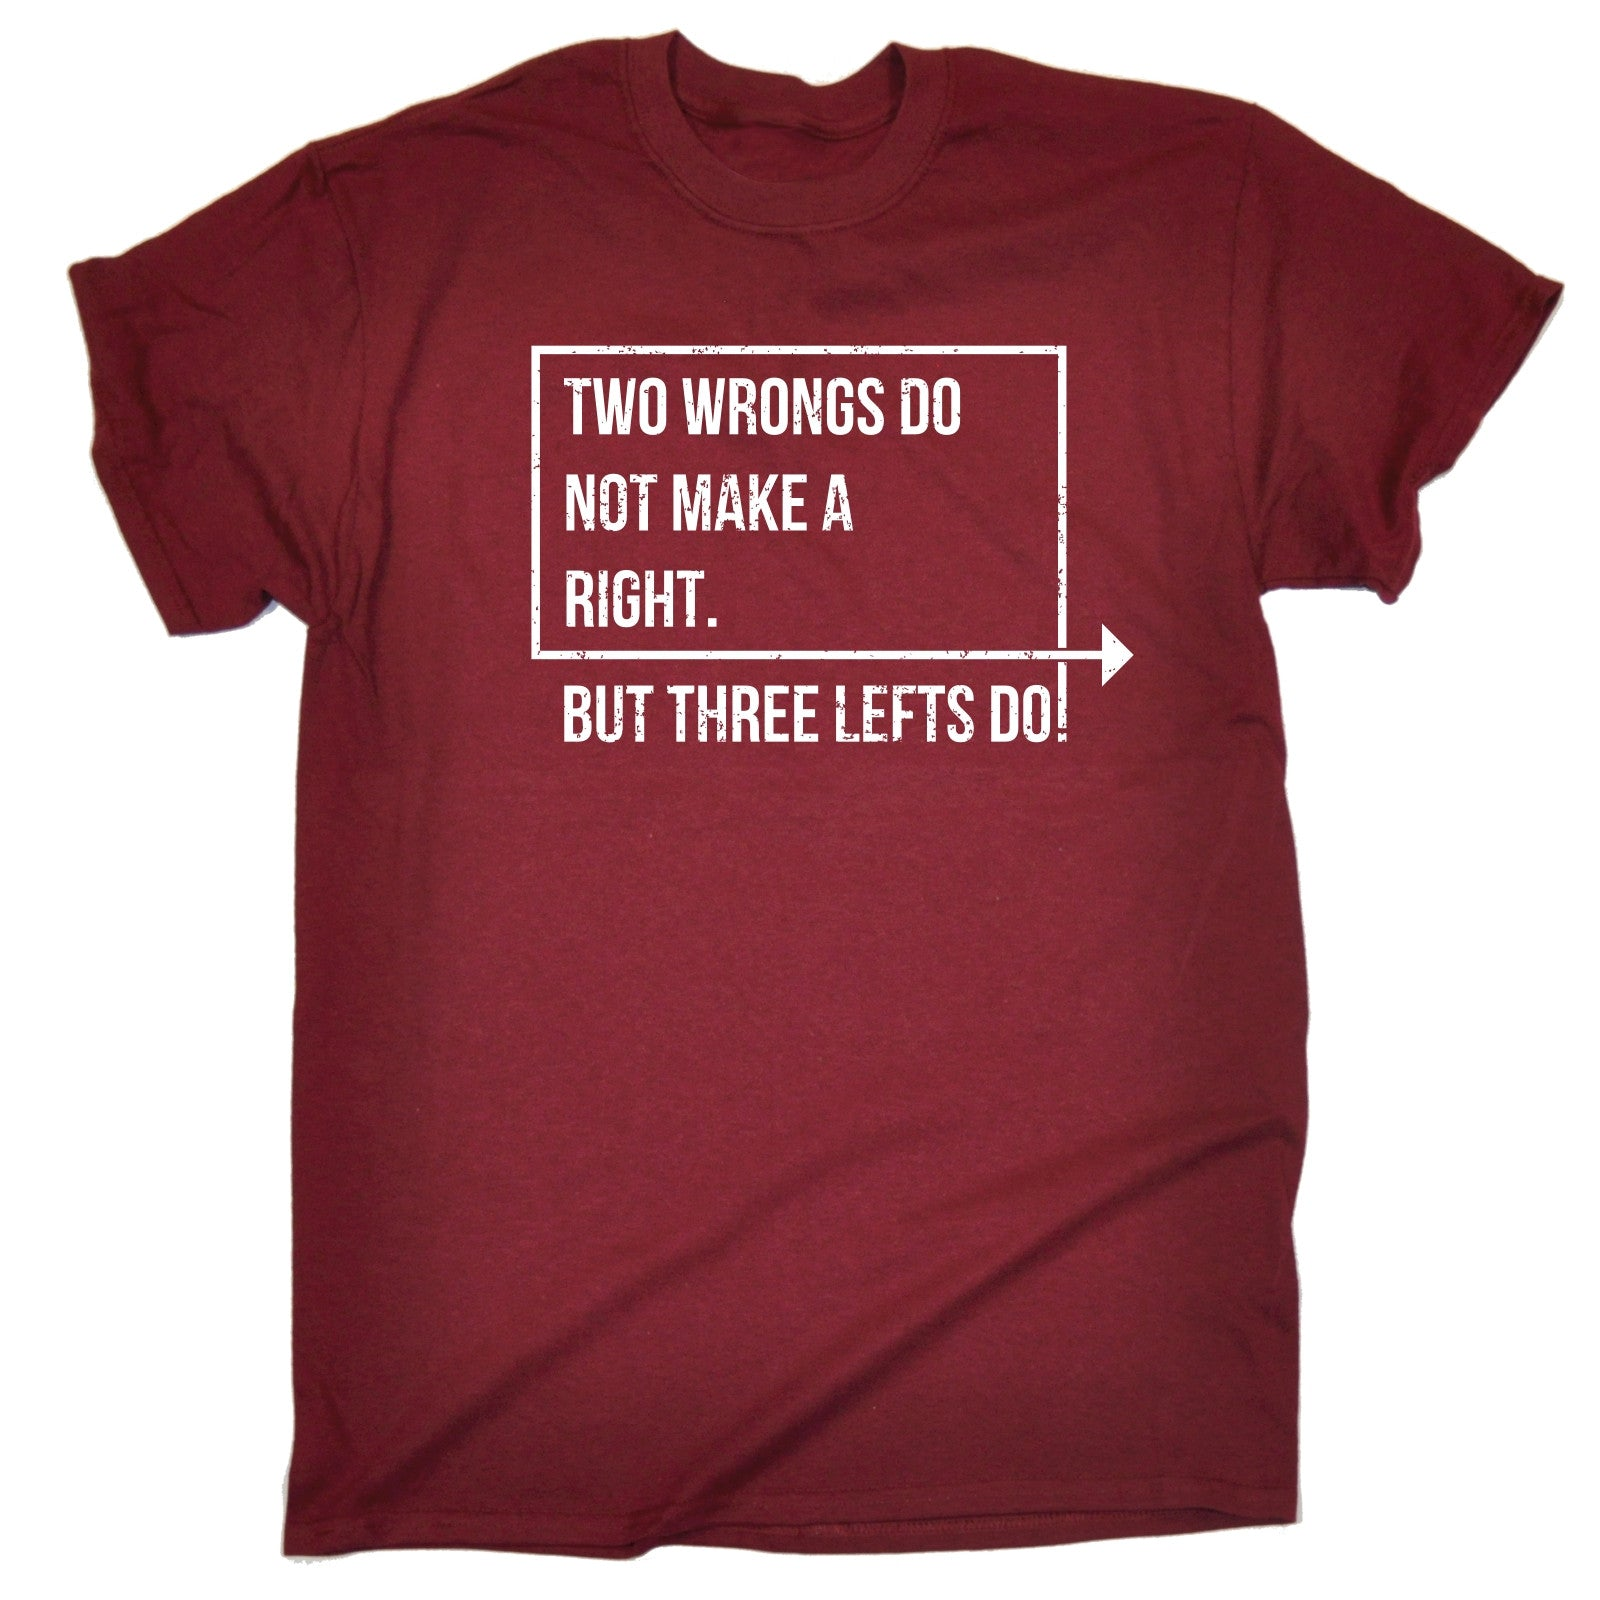 two wrongs make a right Two wrongs don't make a right definition: said to emphasize that it is not acceptable to do something bad to someone just because they did something bad to you first learn more.